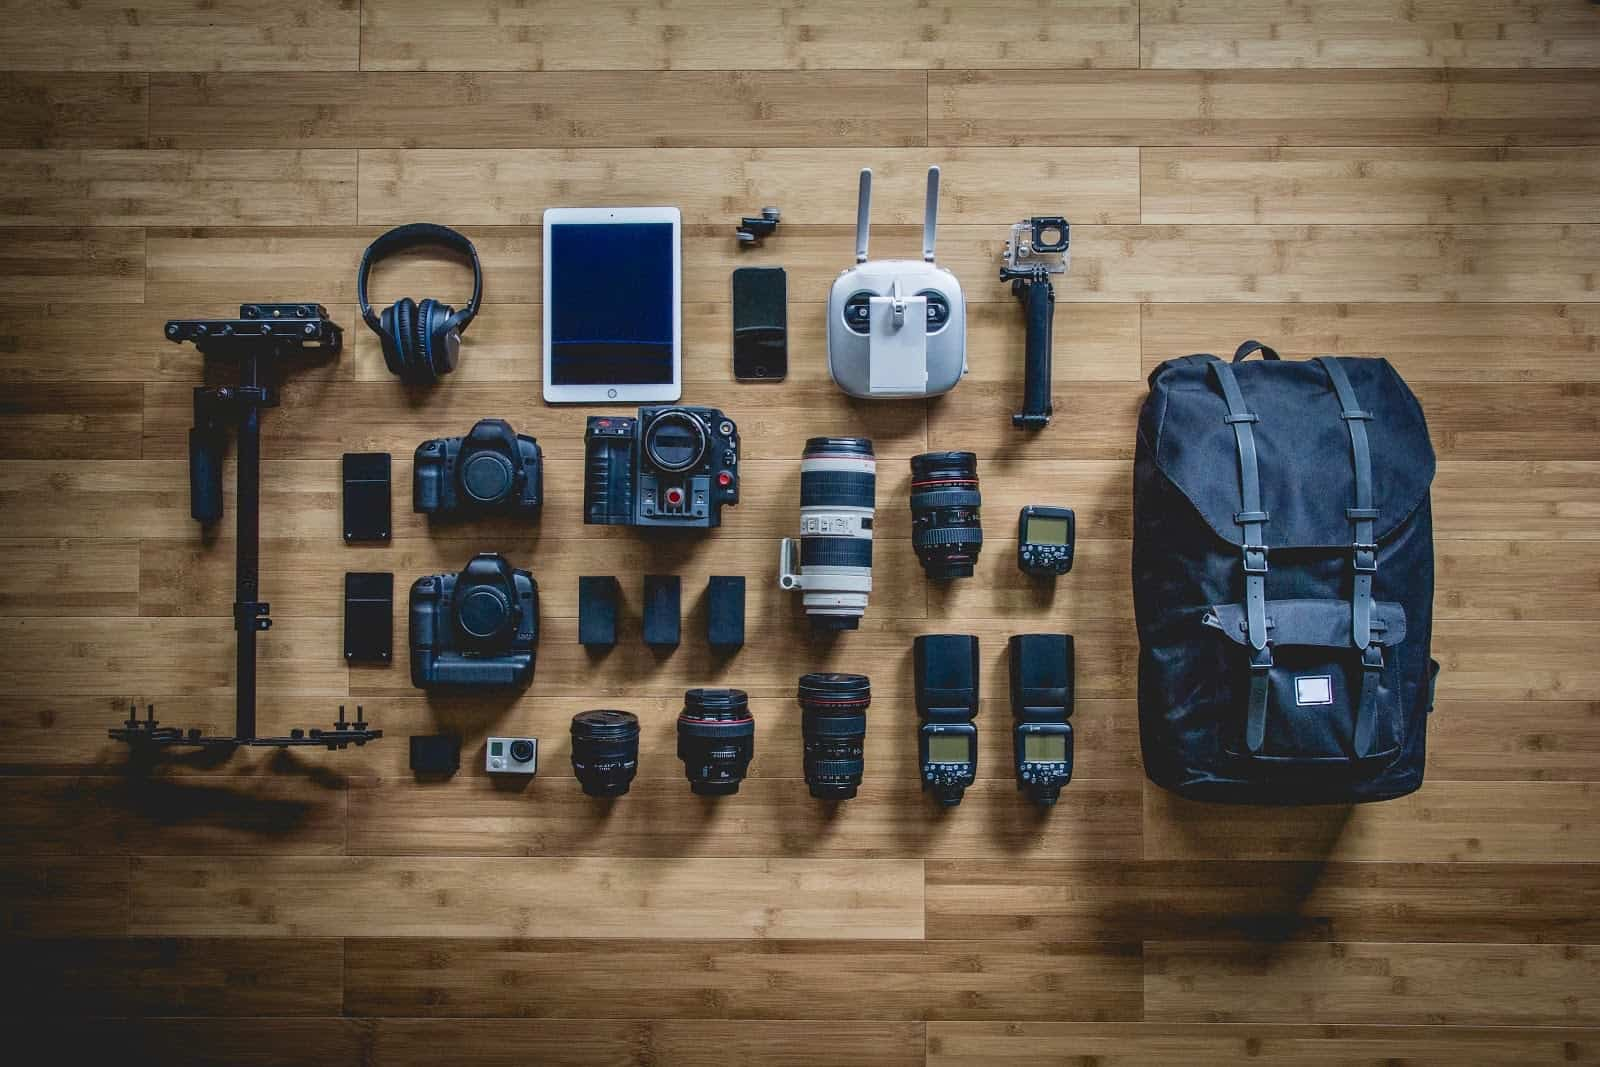 Photography Business Equipment via Unsplash